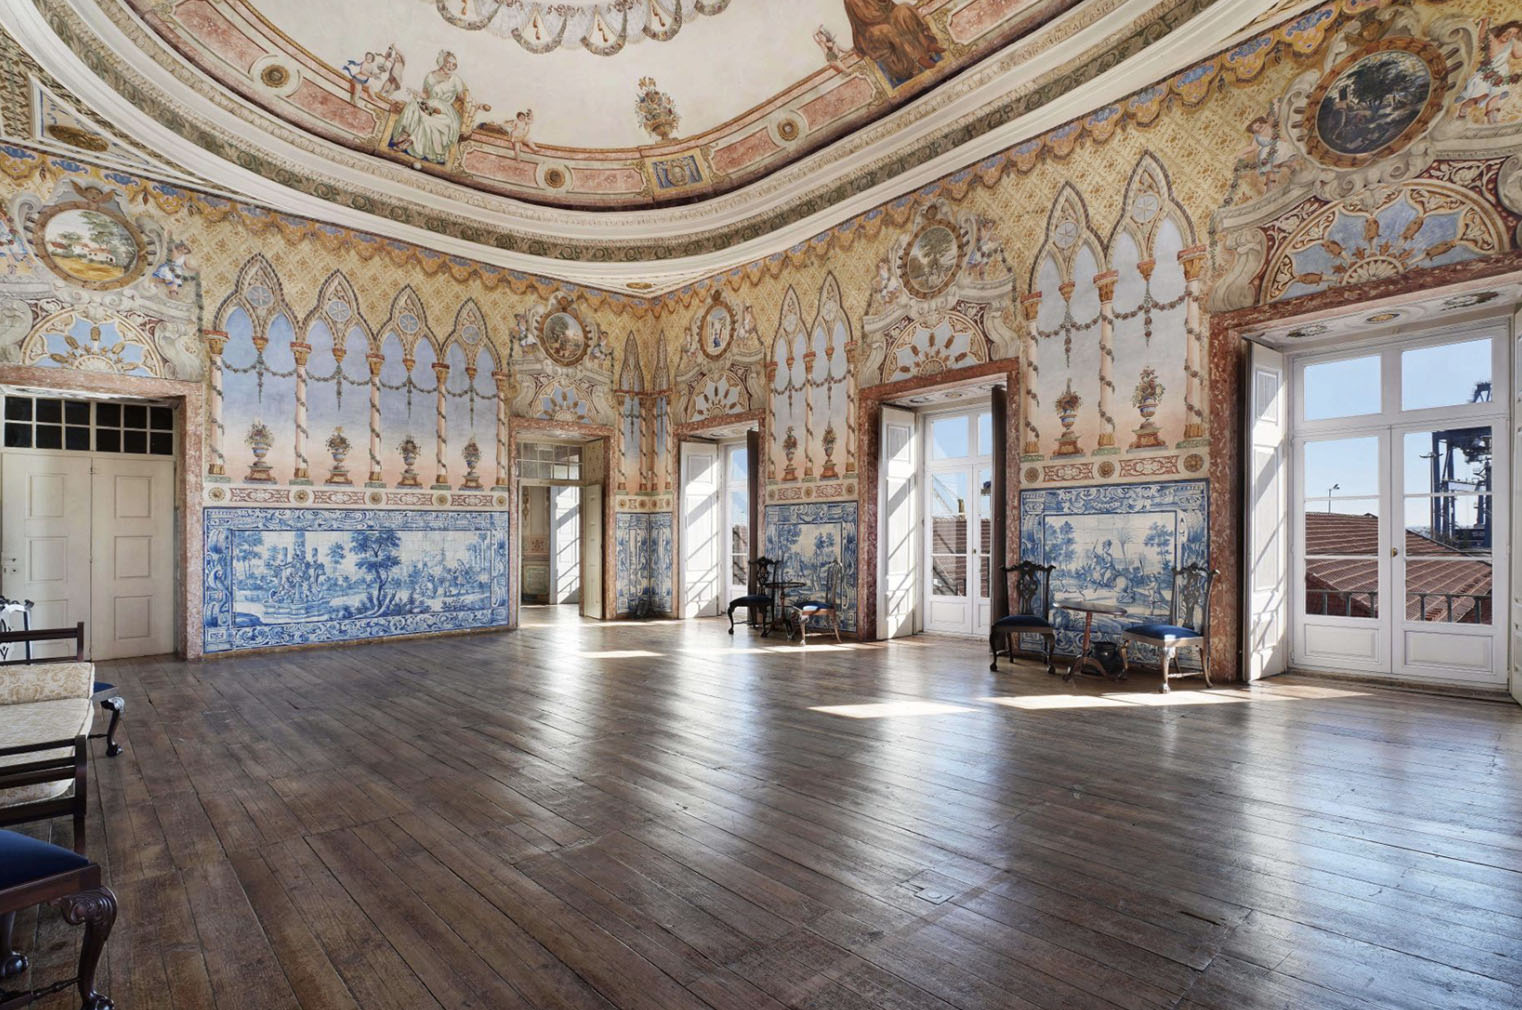 The grand hall of the palace - it's easy to imagine this space hosting banquets and dances throughout the centuries